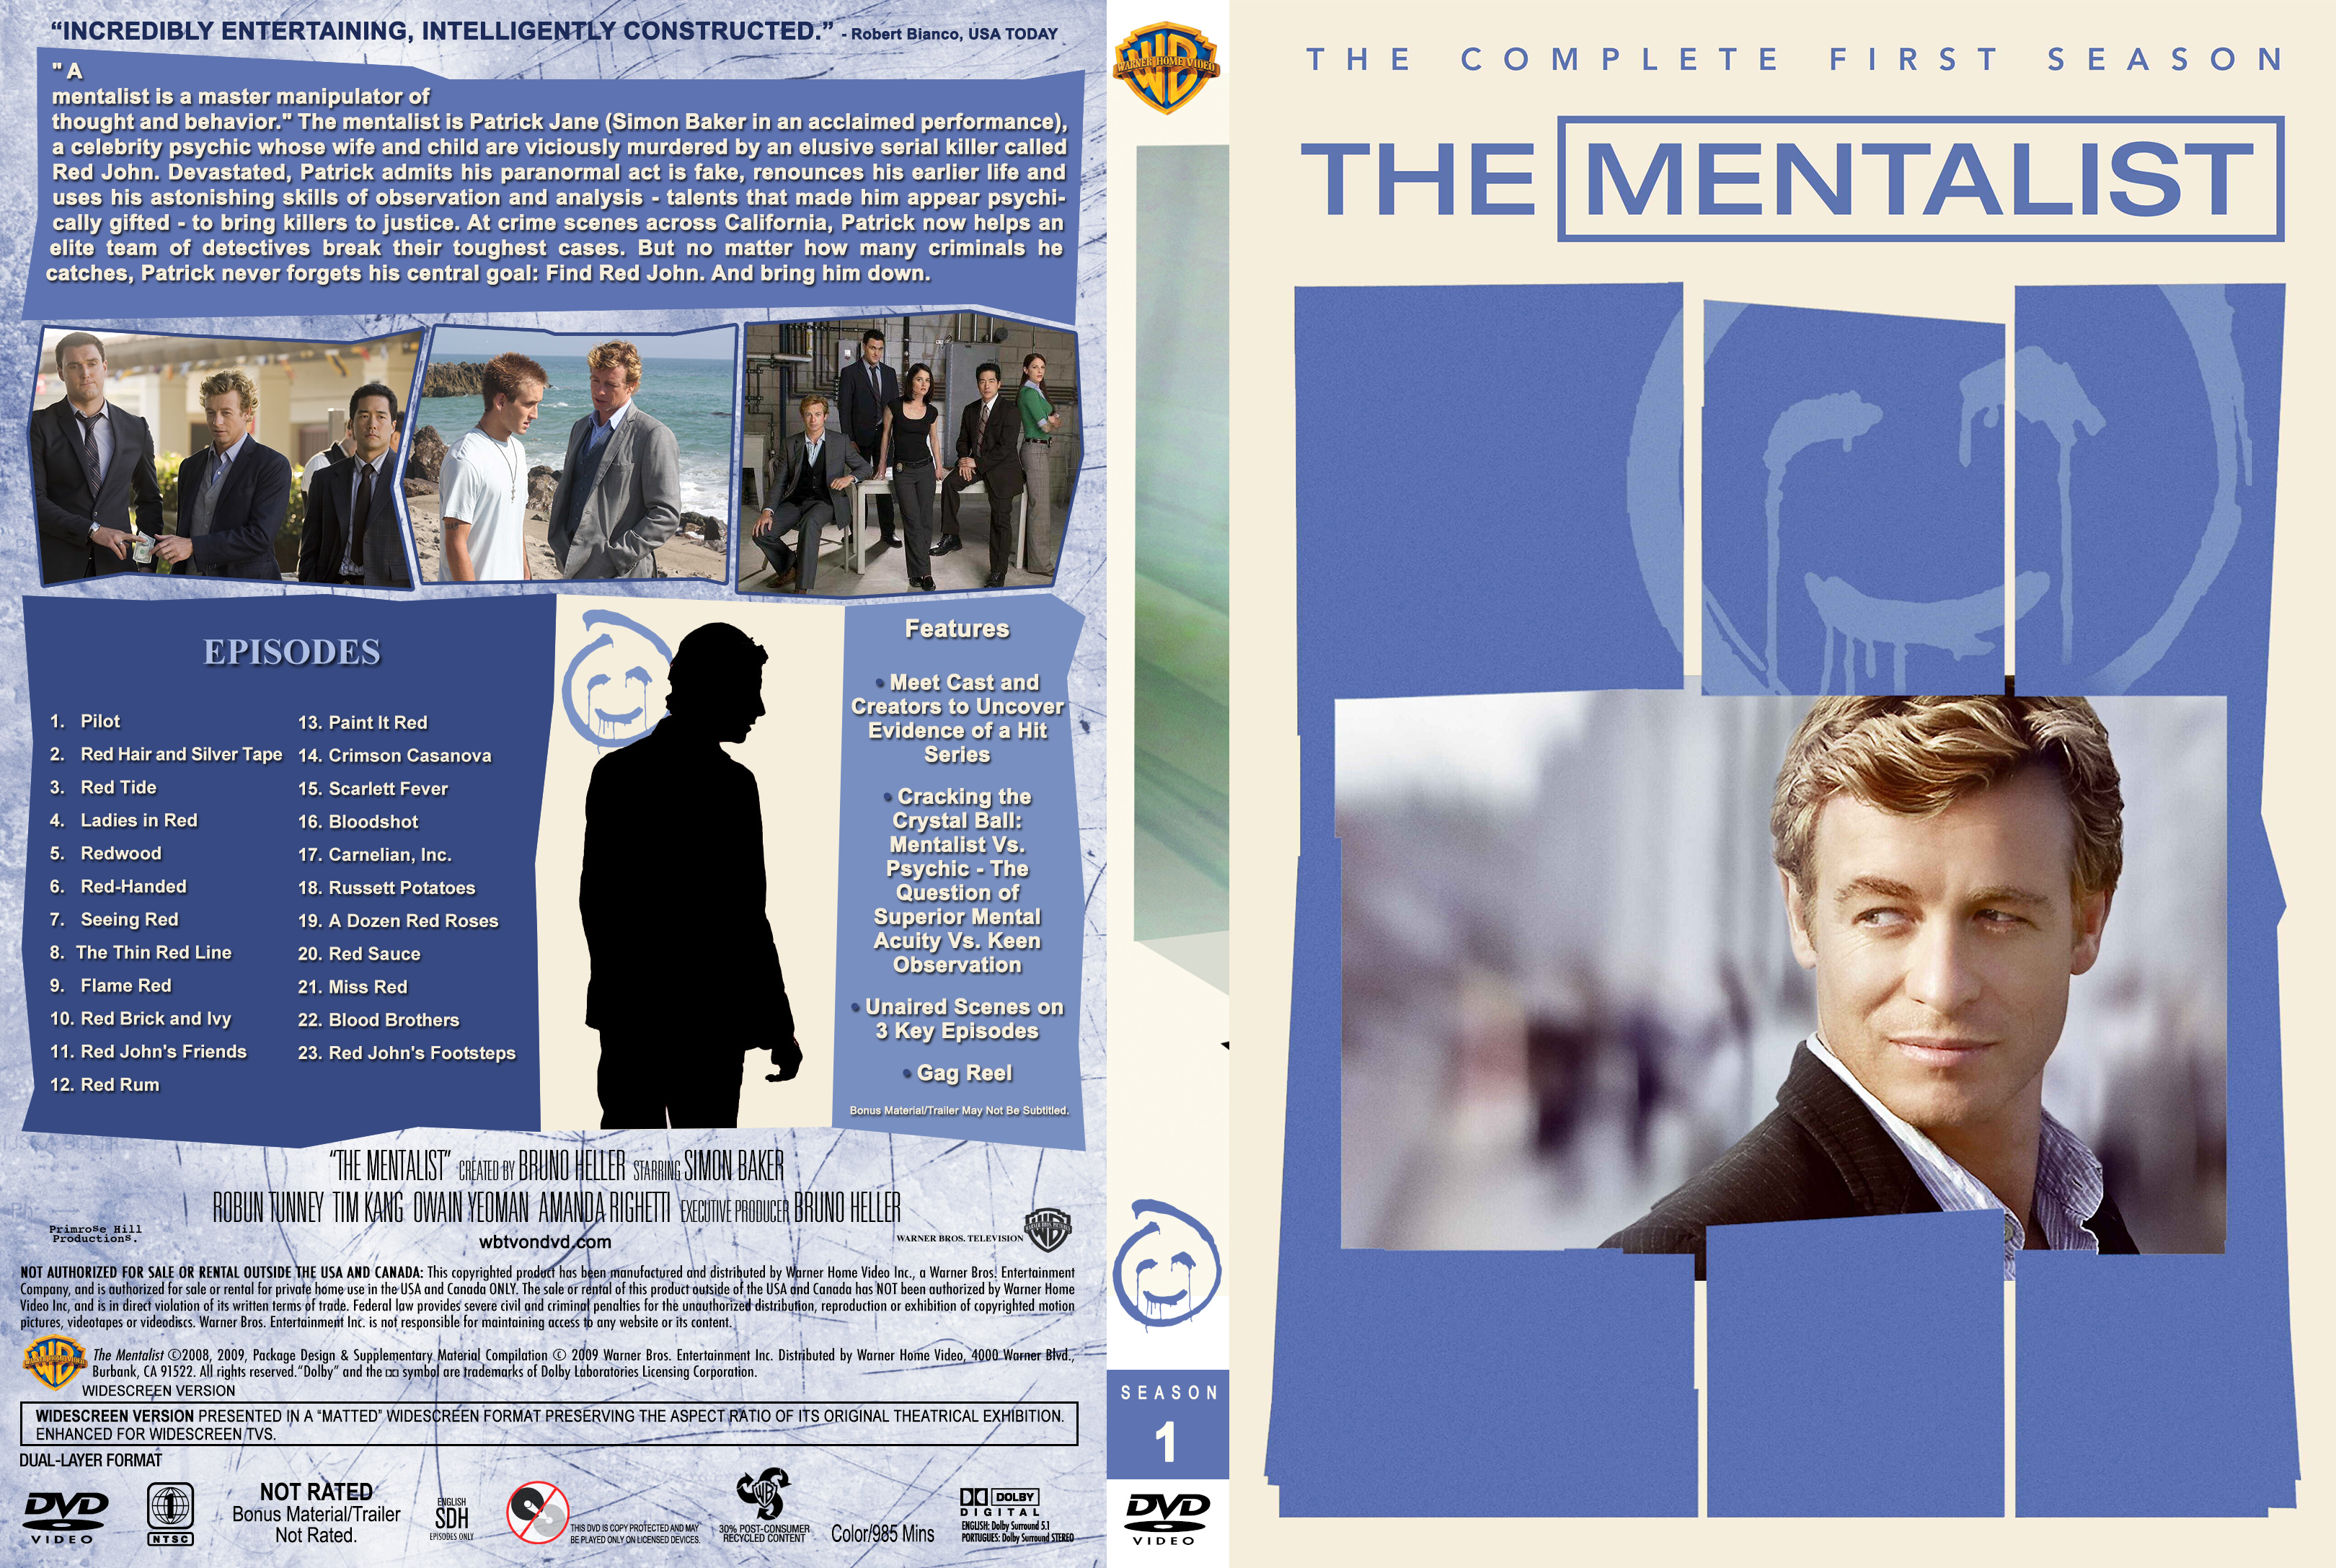 The Mentalist – Season 1 (part of a spanning) (2008) Covers